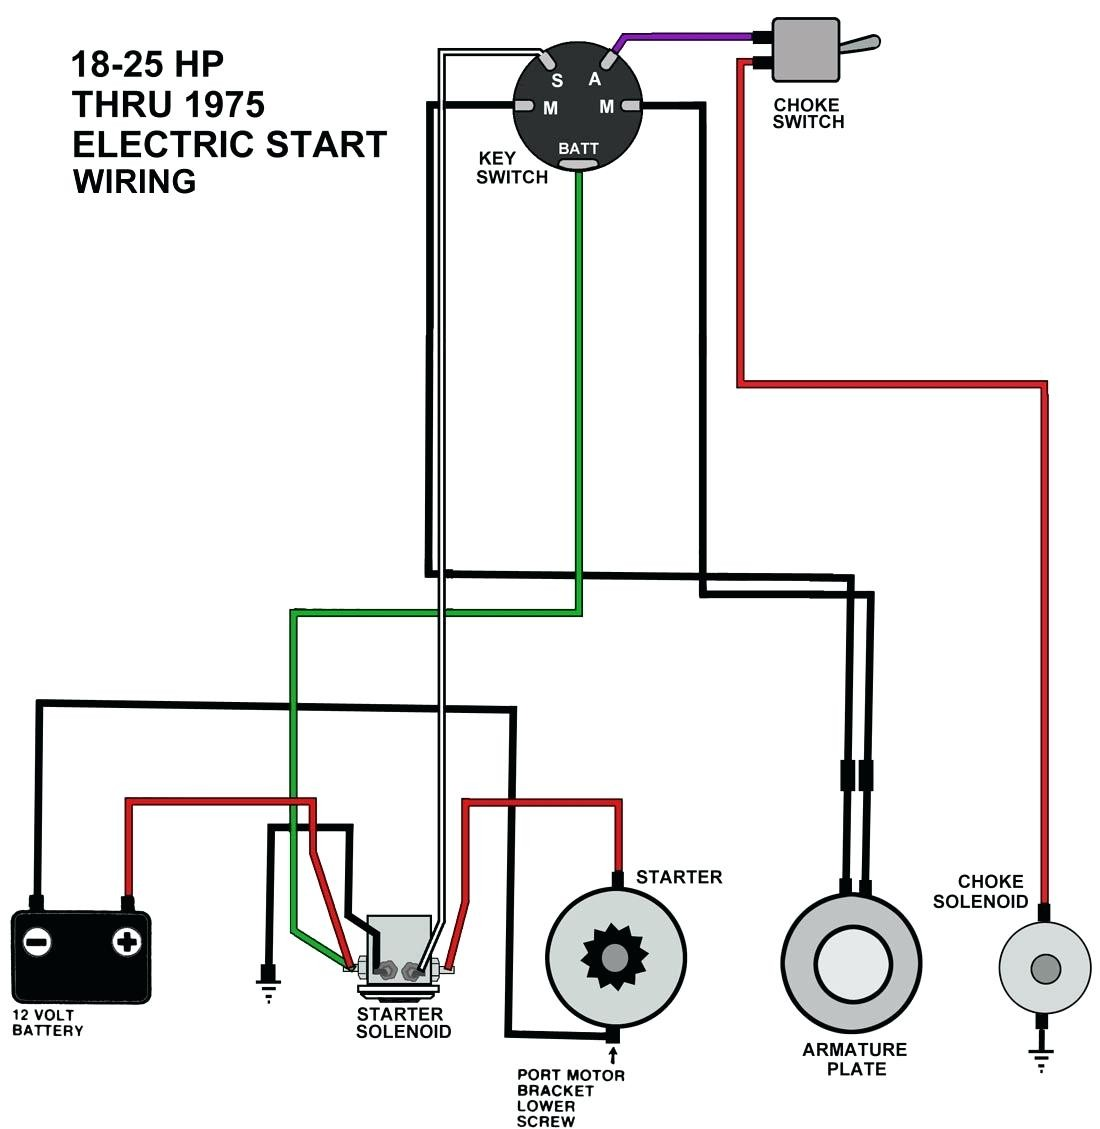 Rx 8 Motor Wire Diagram Starting | Wiring Diagram  Hp Johnson Wiring Diagram on hp panel diagram, hp networking diagram, hp computer diagram, hp parts diagram, hp piping diagram, hp battery diagram, hp hardware diagram, hp power supply diagram, hp cable diagram,